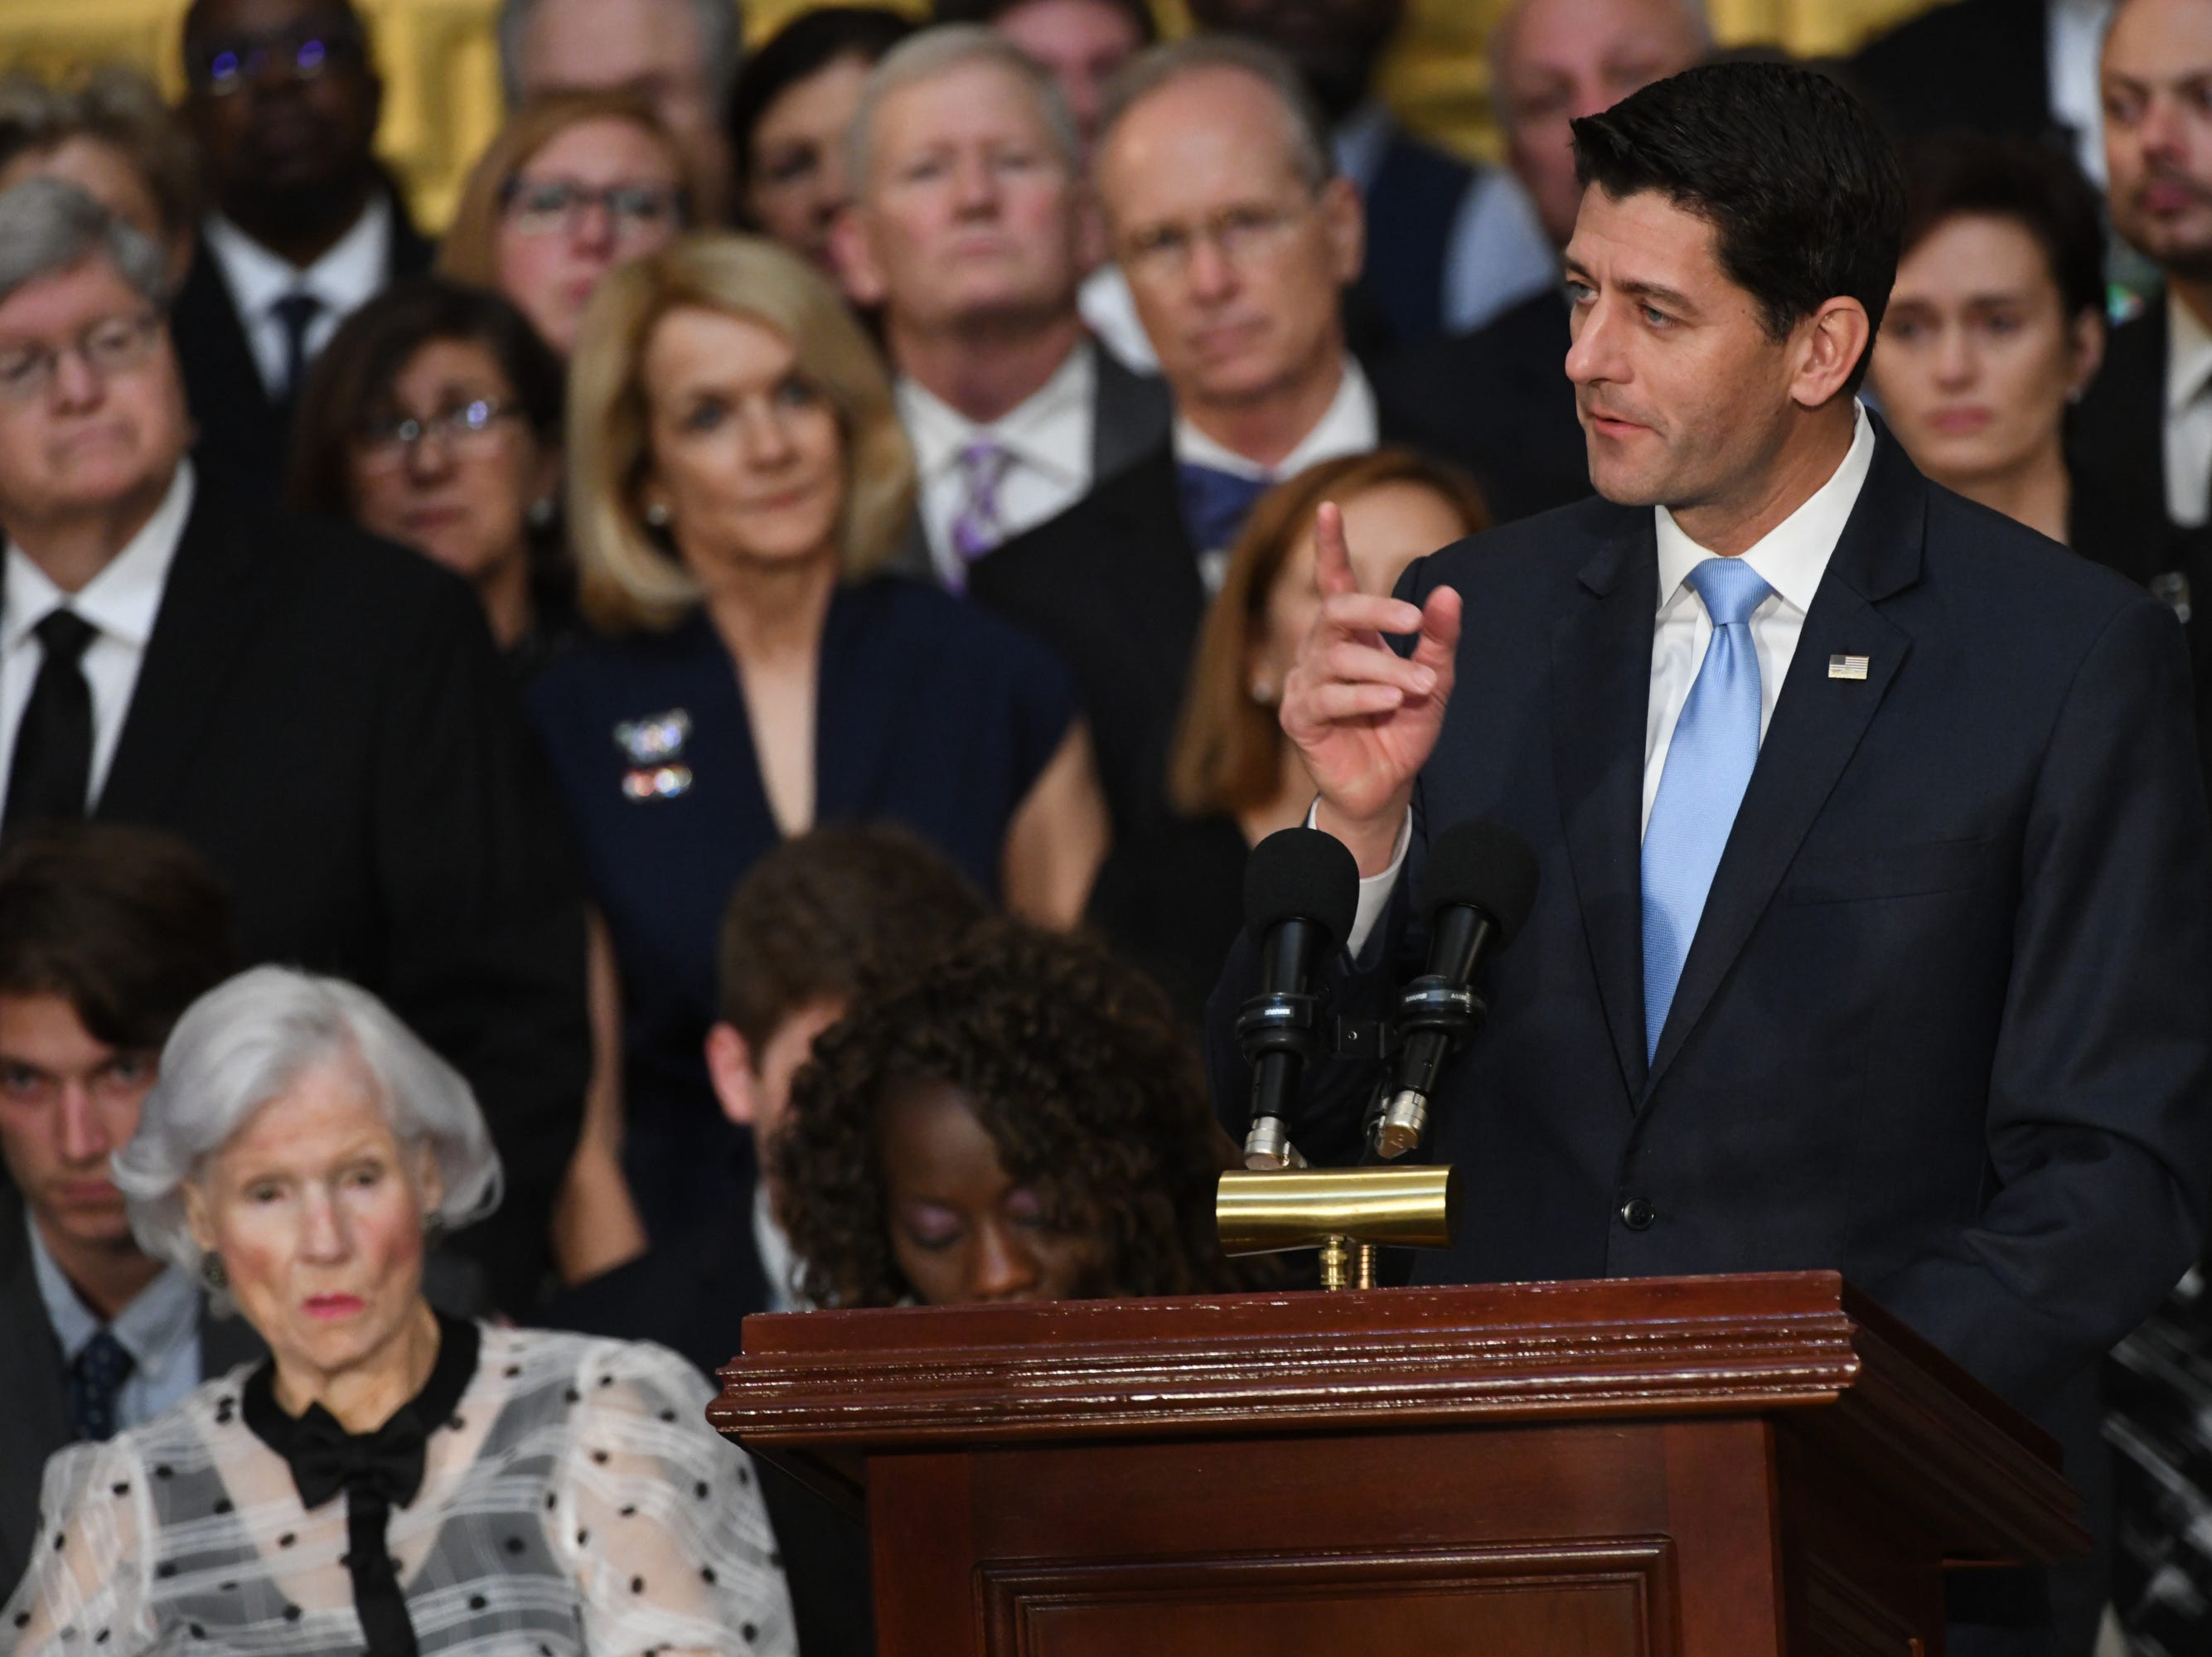 8/31/18 11:02:40 AM -- Washington, DC, U.S.A  -- Speaker of the House Paul Ryan speaks as the body of John McCain lies in state at the U.S. Capitol in Washington on Aug. 31, 2018 in Washington. Sen. McCain died on Aug. 25. --    Photo by Jasper Colt, USA TODAY Staff